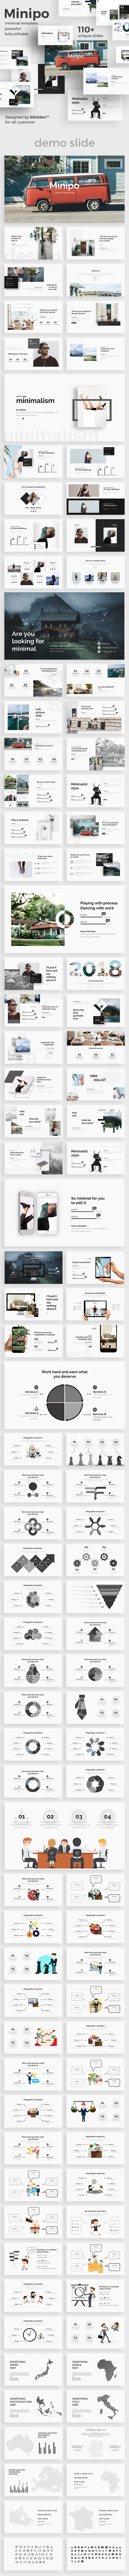 Minipo Creative Google Slide Template - Google Slides Presentation Templates